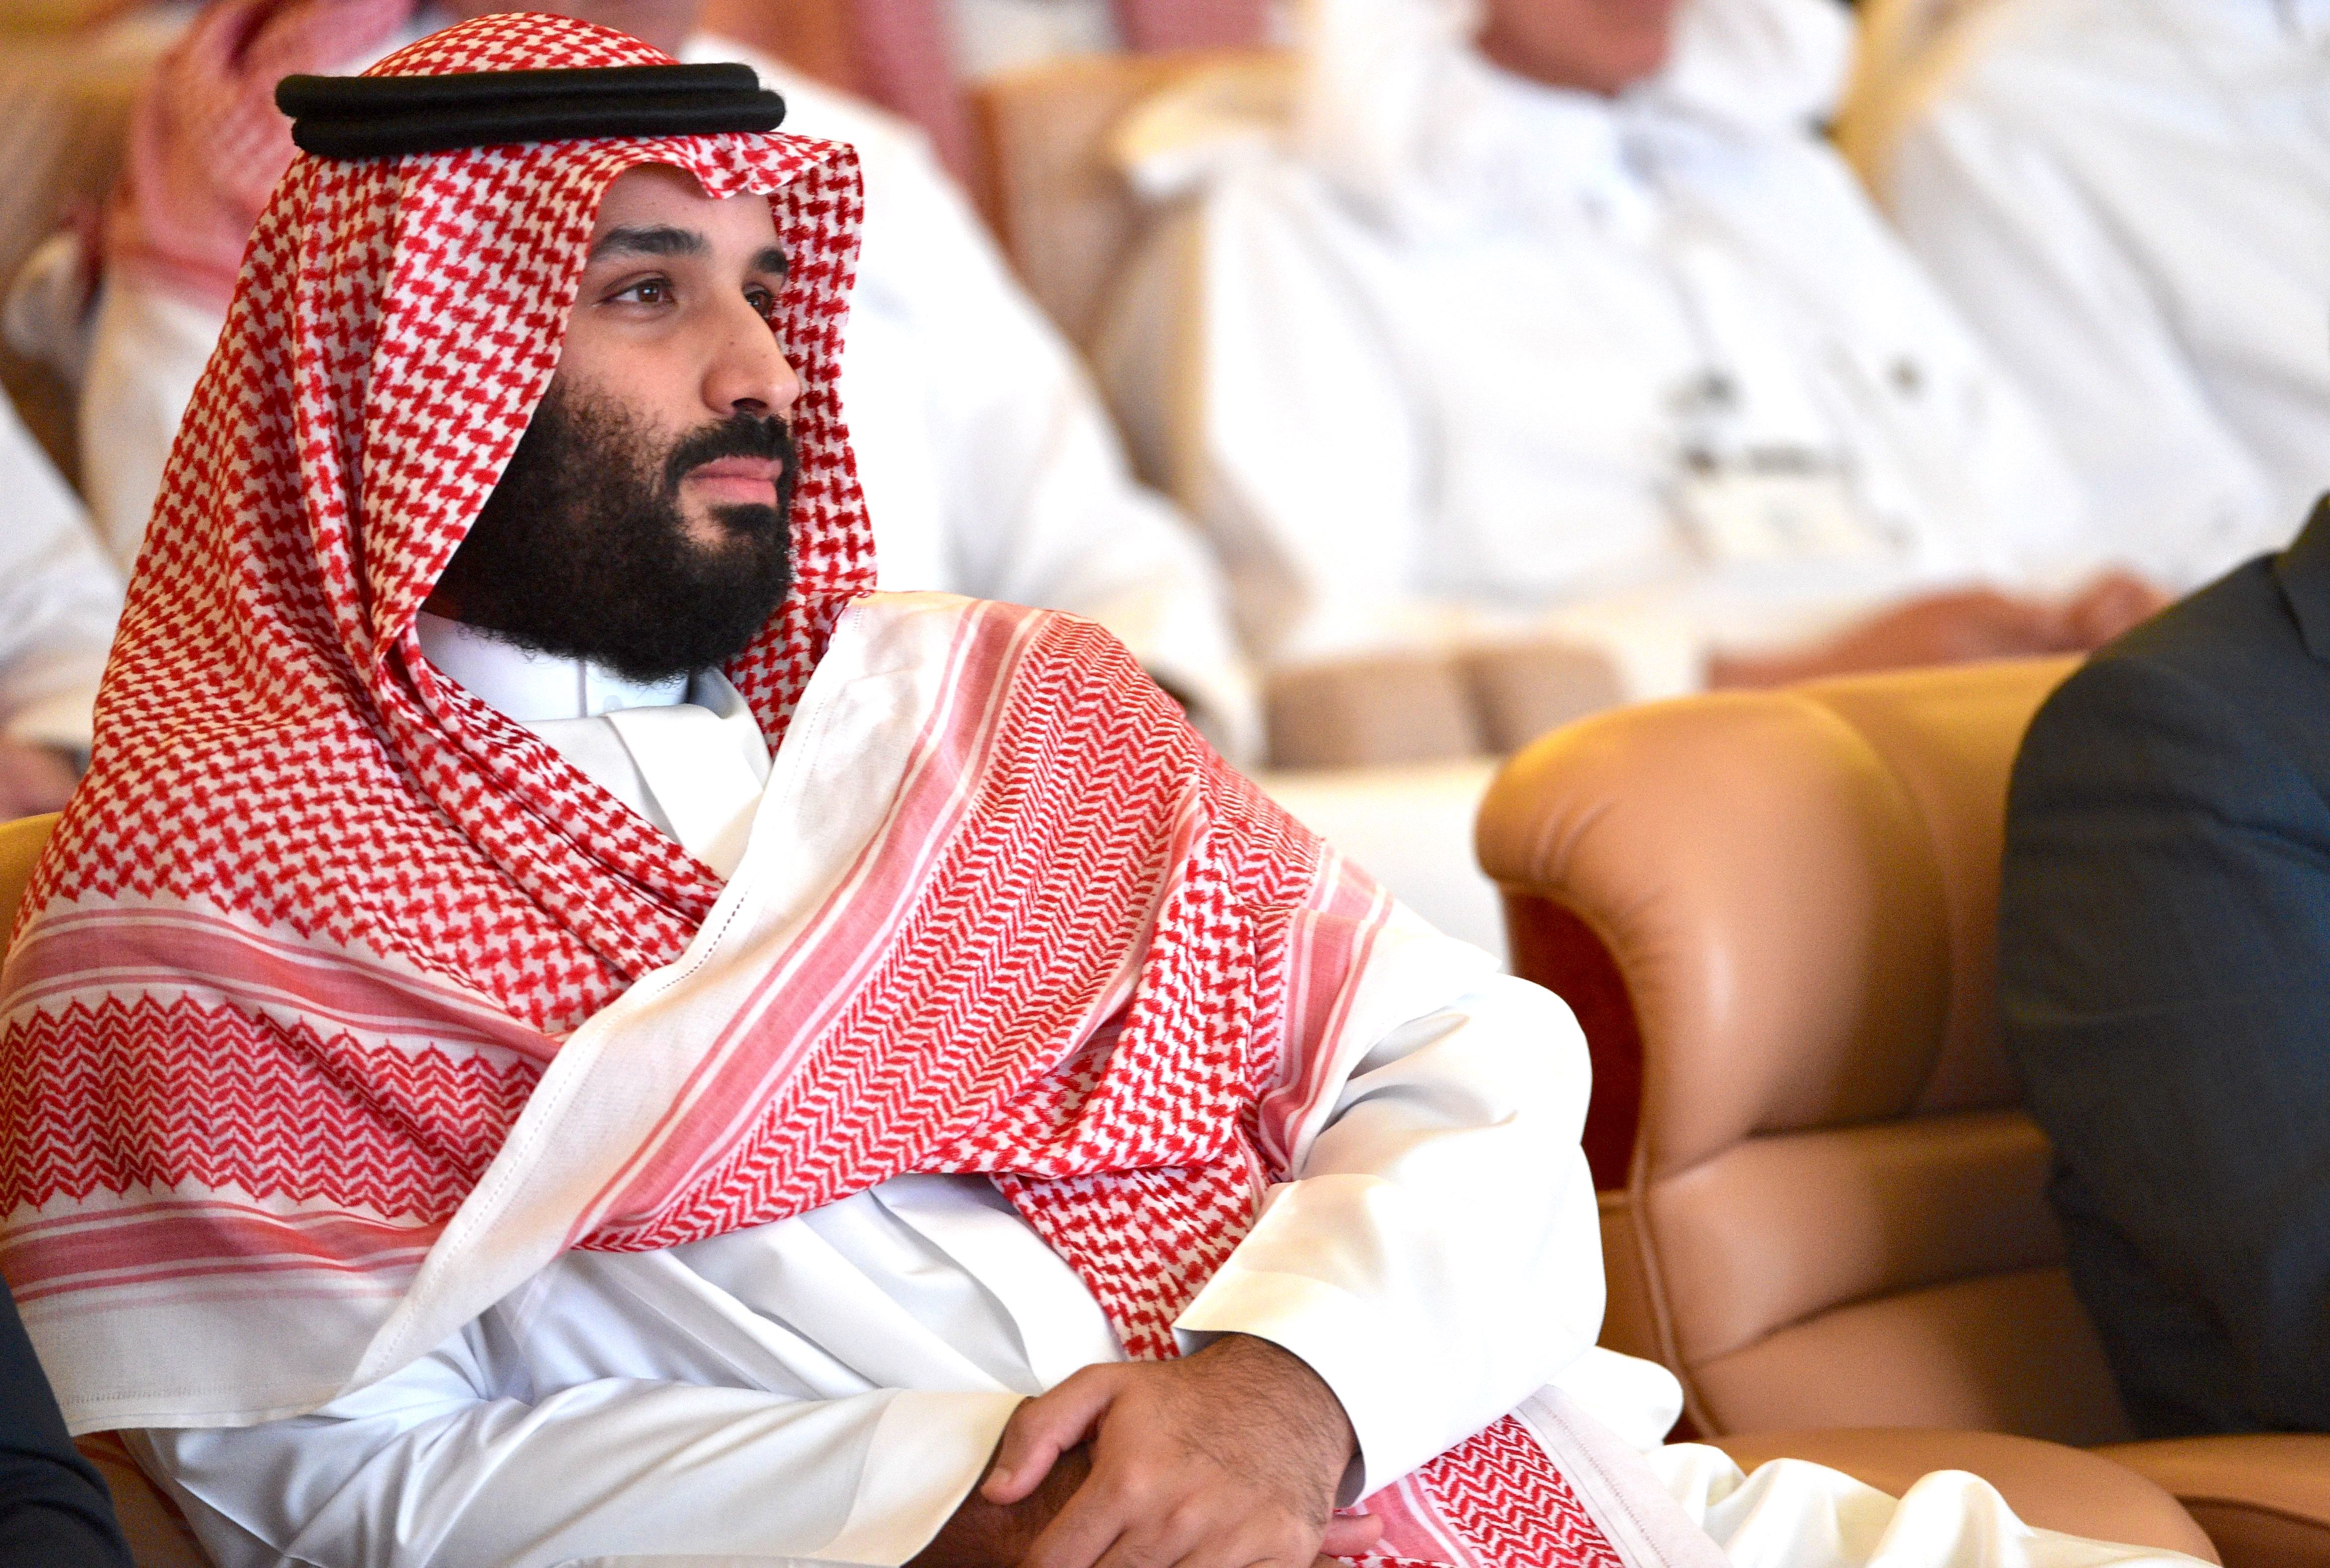 theepochtimes.com - Jasper Fakkert - Khashoggi's Death Is Being Used to Further Destabilize the Middle East